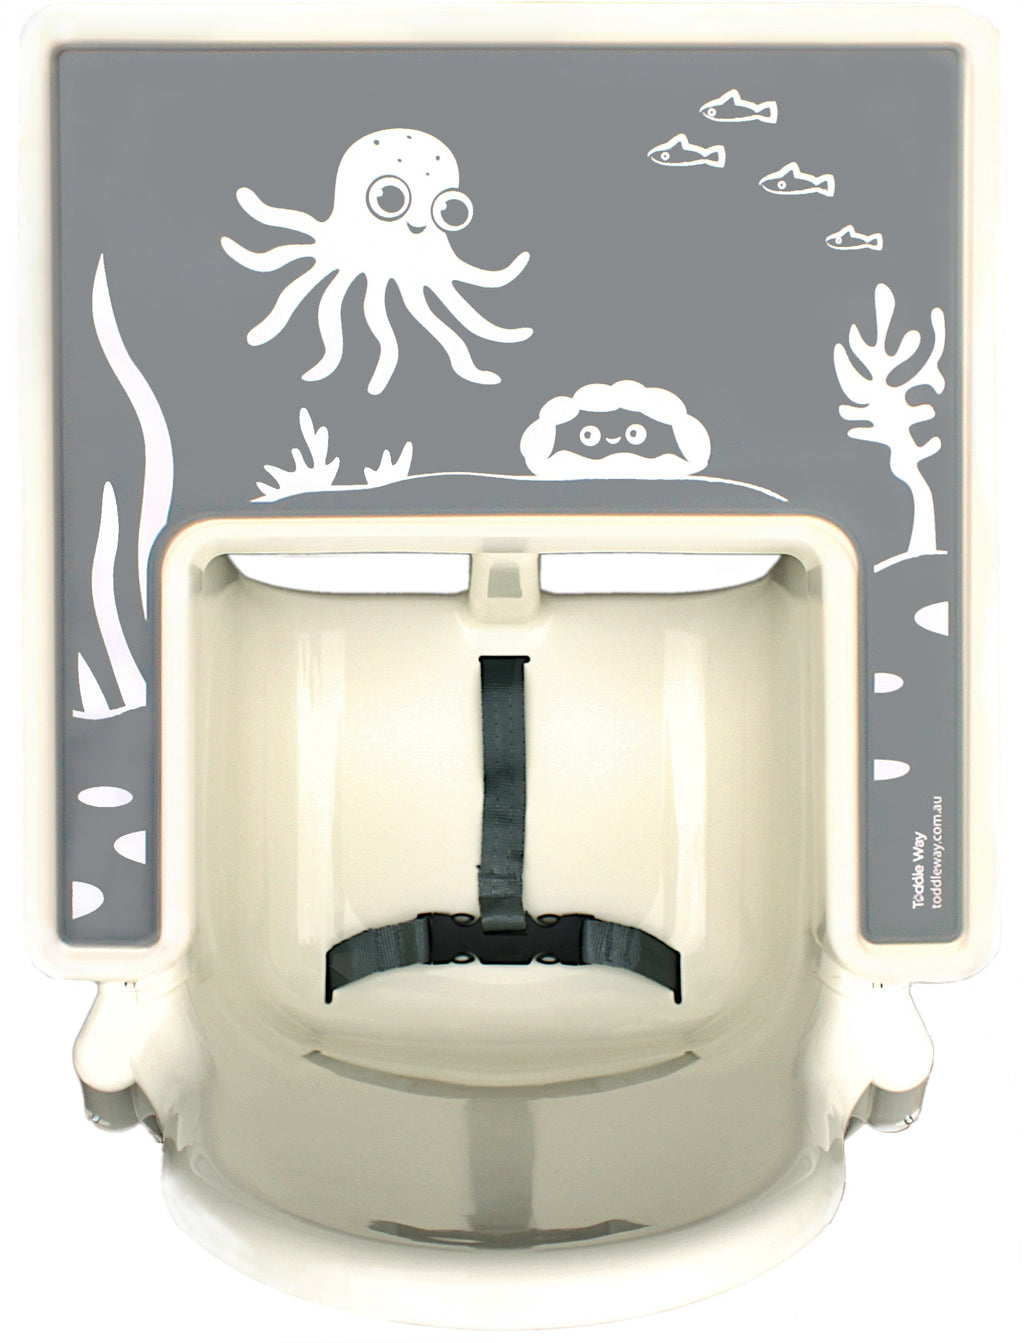 Grey with screen printed octopus, crab, seaweed under the ocean on a silicone placemat/meal mat to fit on the tray of the IKEA Antilop high chair.